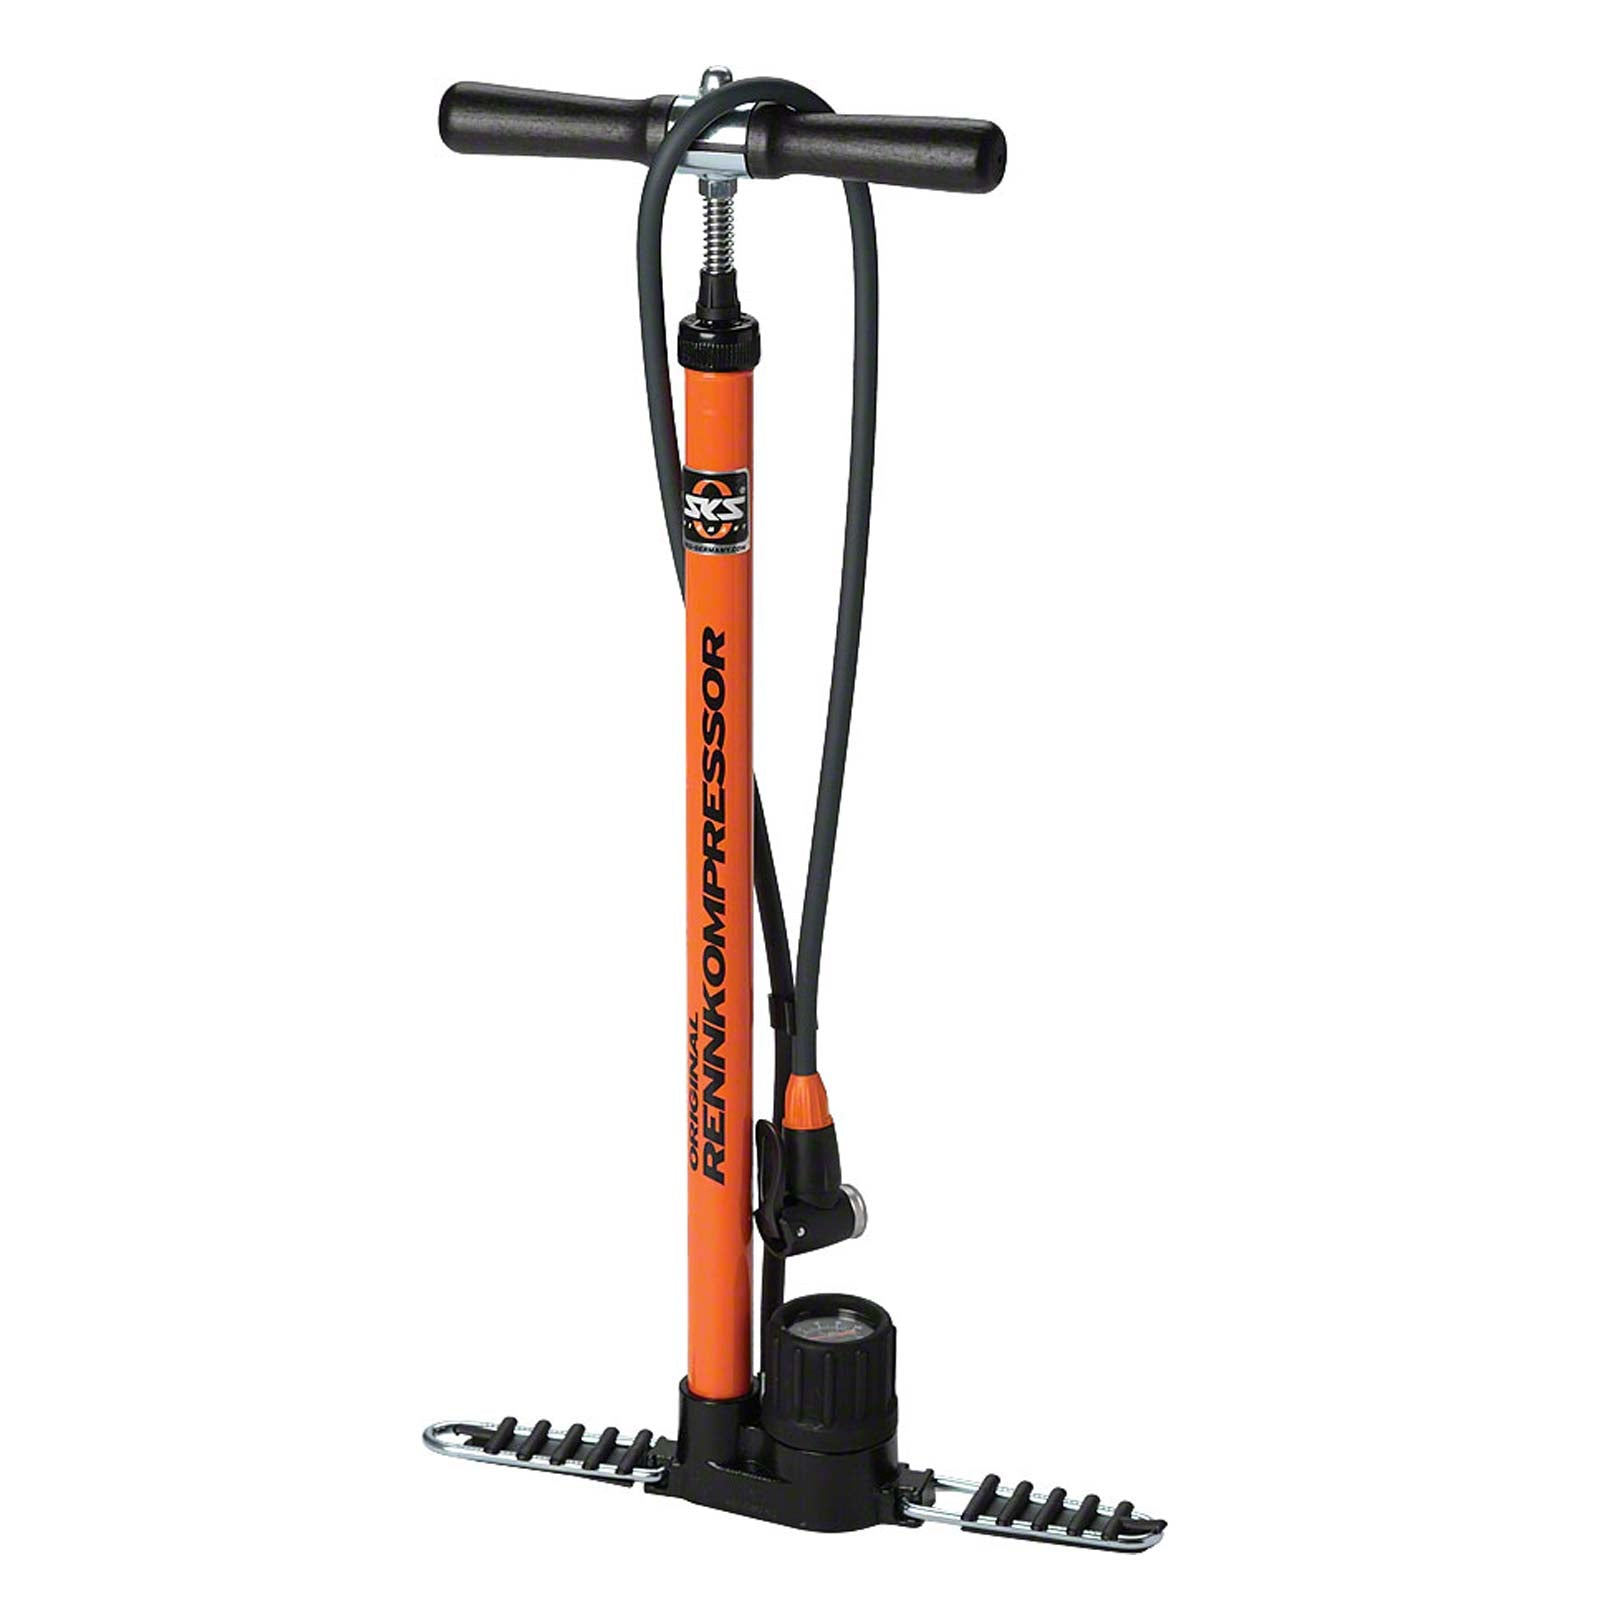 SKS Rennkompressor Floor Pump - Orange